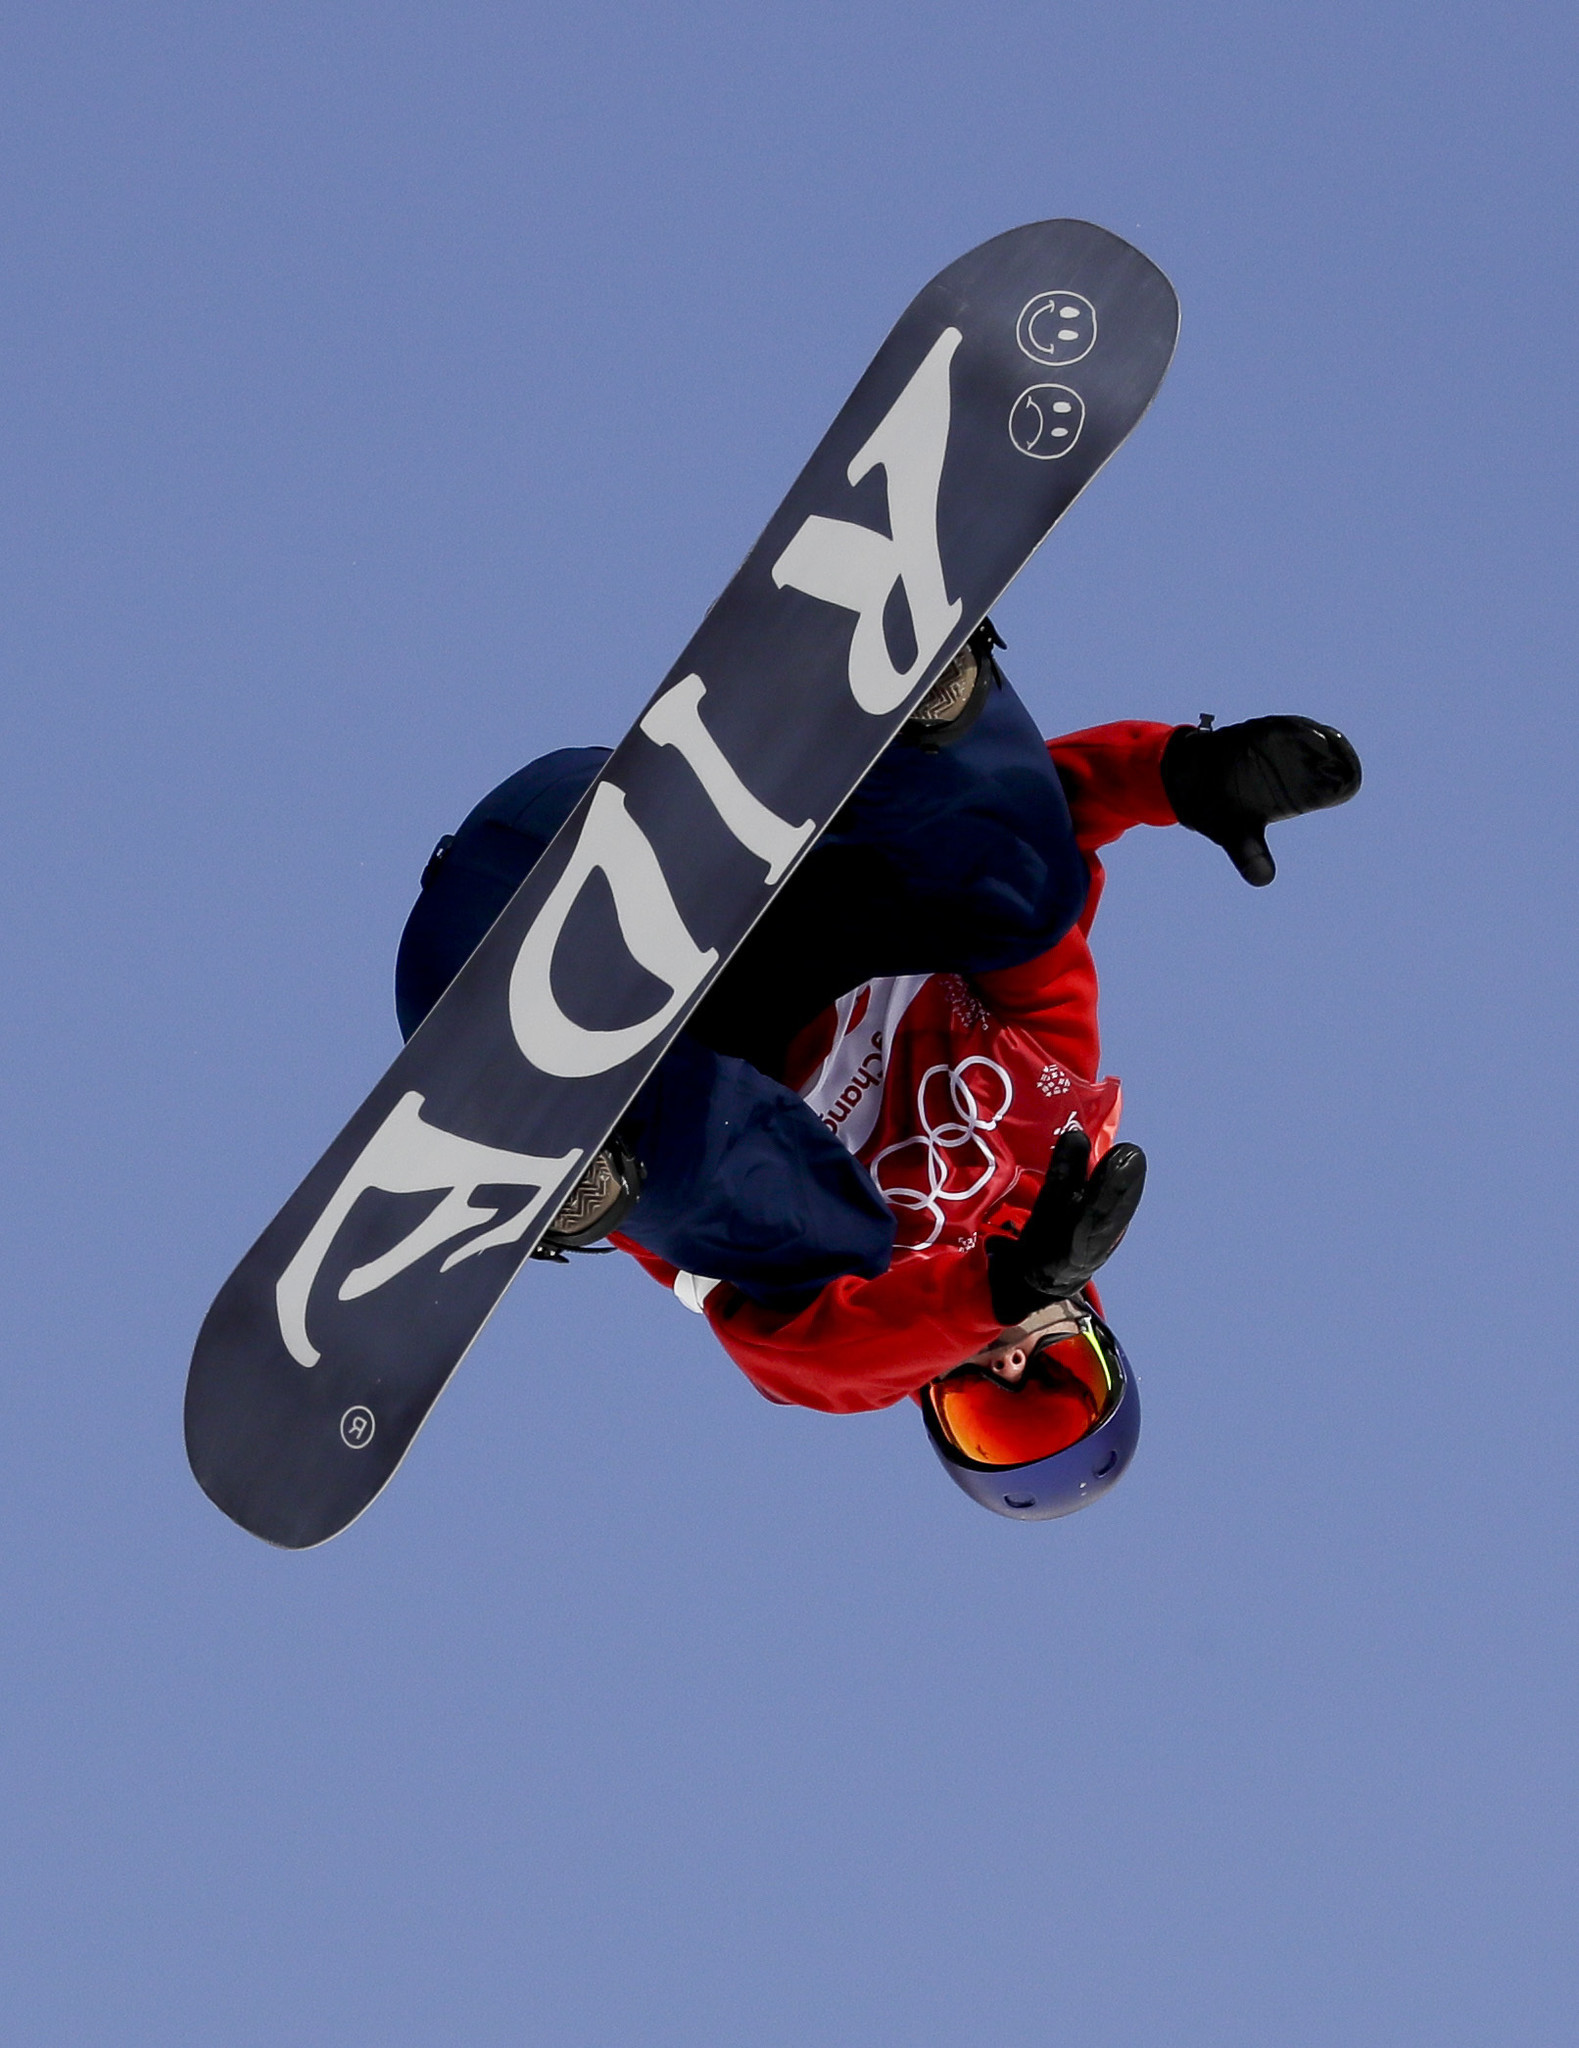 548cbad52c04 Olympics  new big air snowboarding takes sports to a new extreme ...